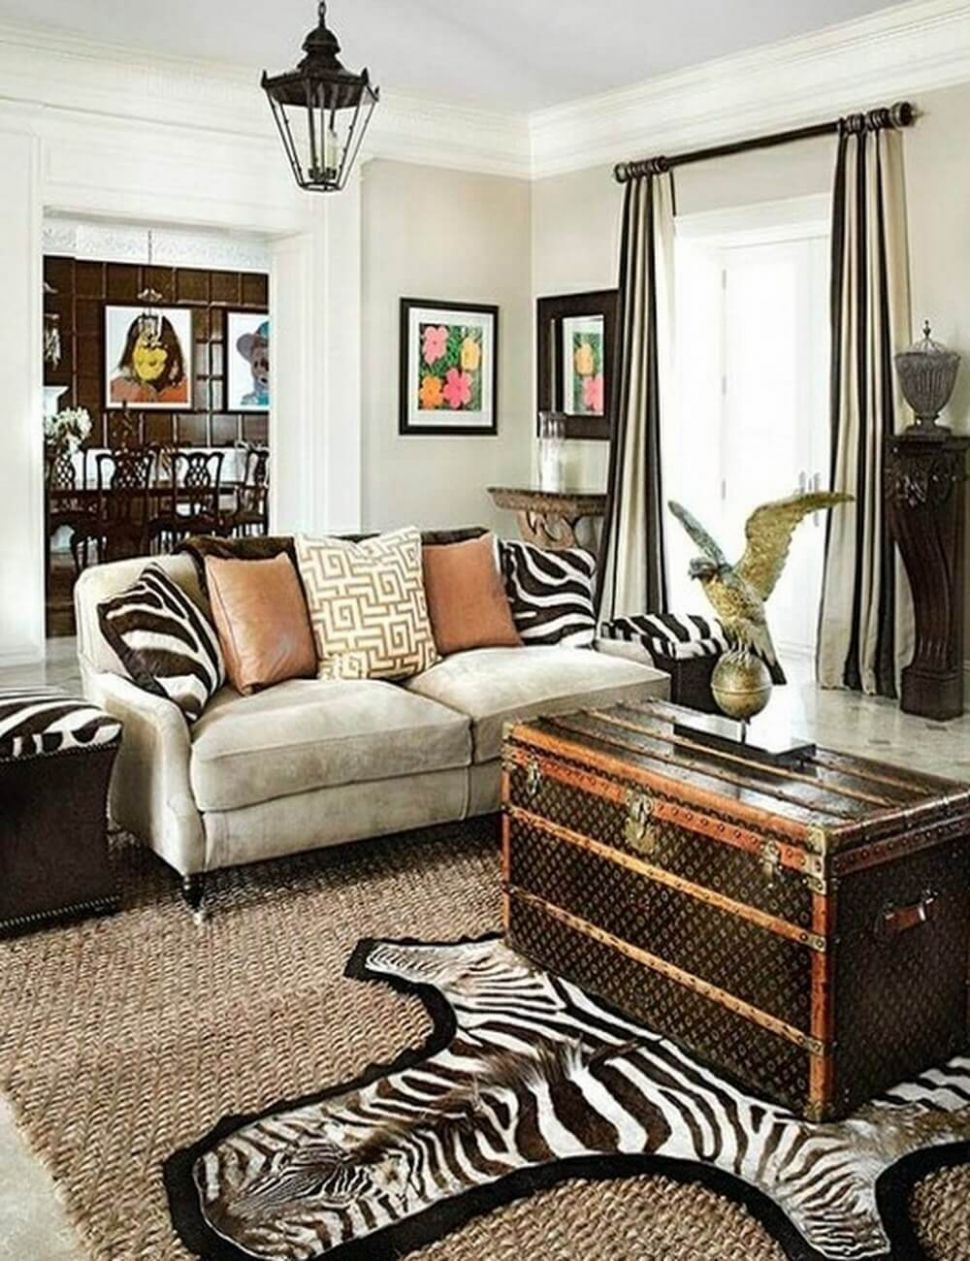 Make Your Rooms Look Fierce and Wild by Using Zebra Print